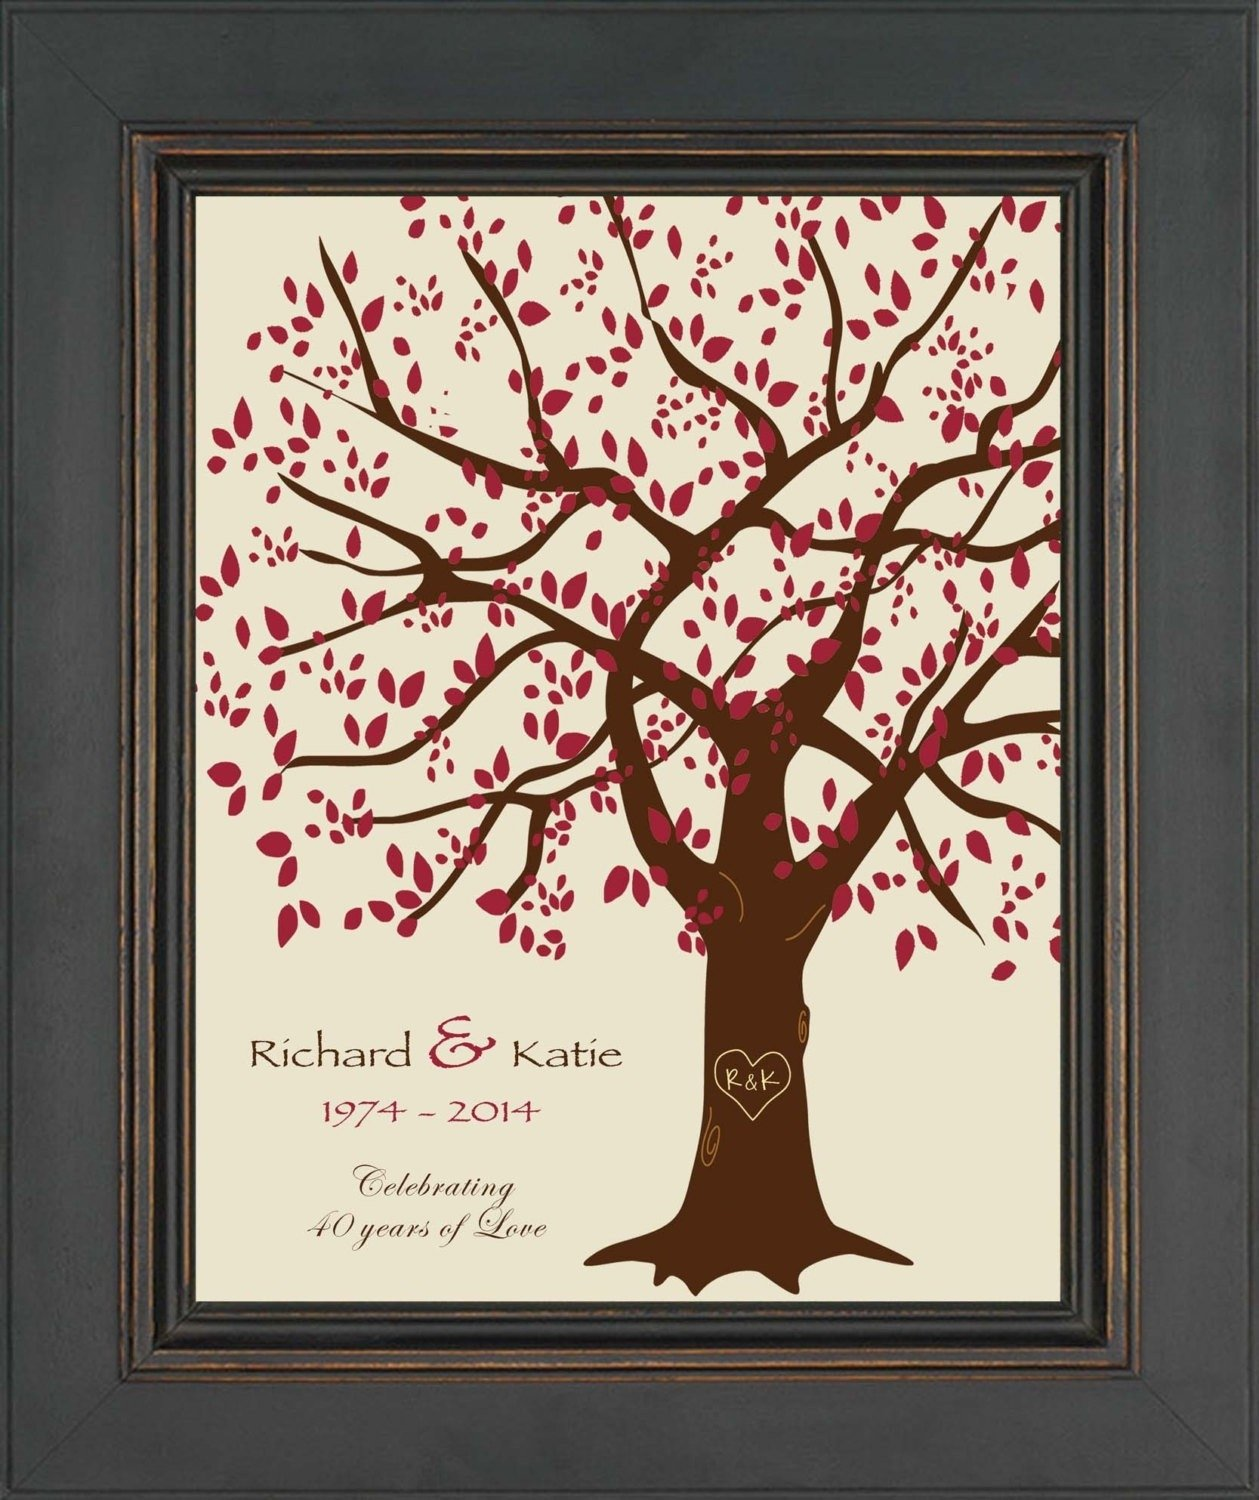 10 Most Recommended Ideas For 40Th Wedding Anniversary 40th wedding anniversary gift ideas for couples unique 40th 3 2020